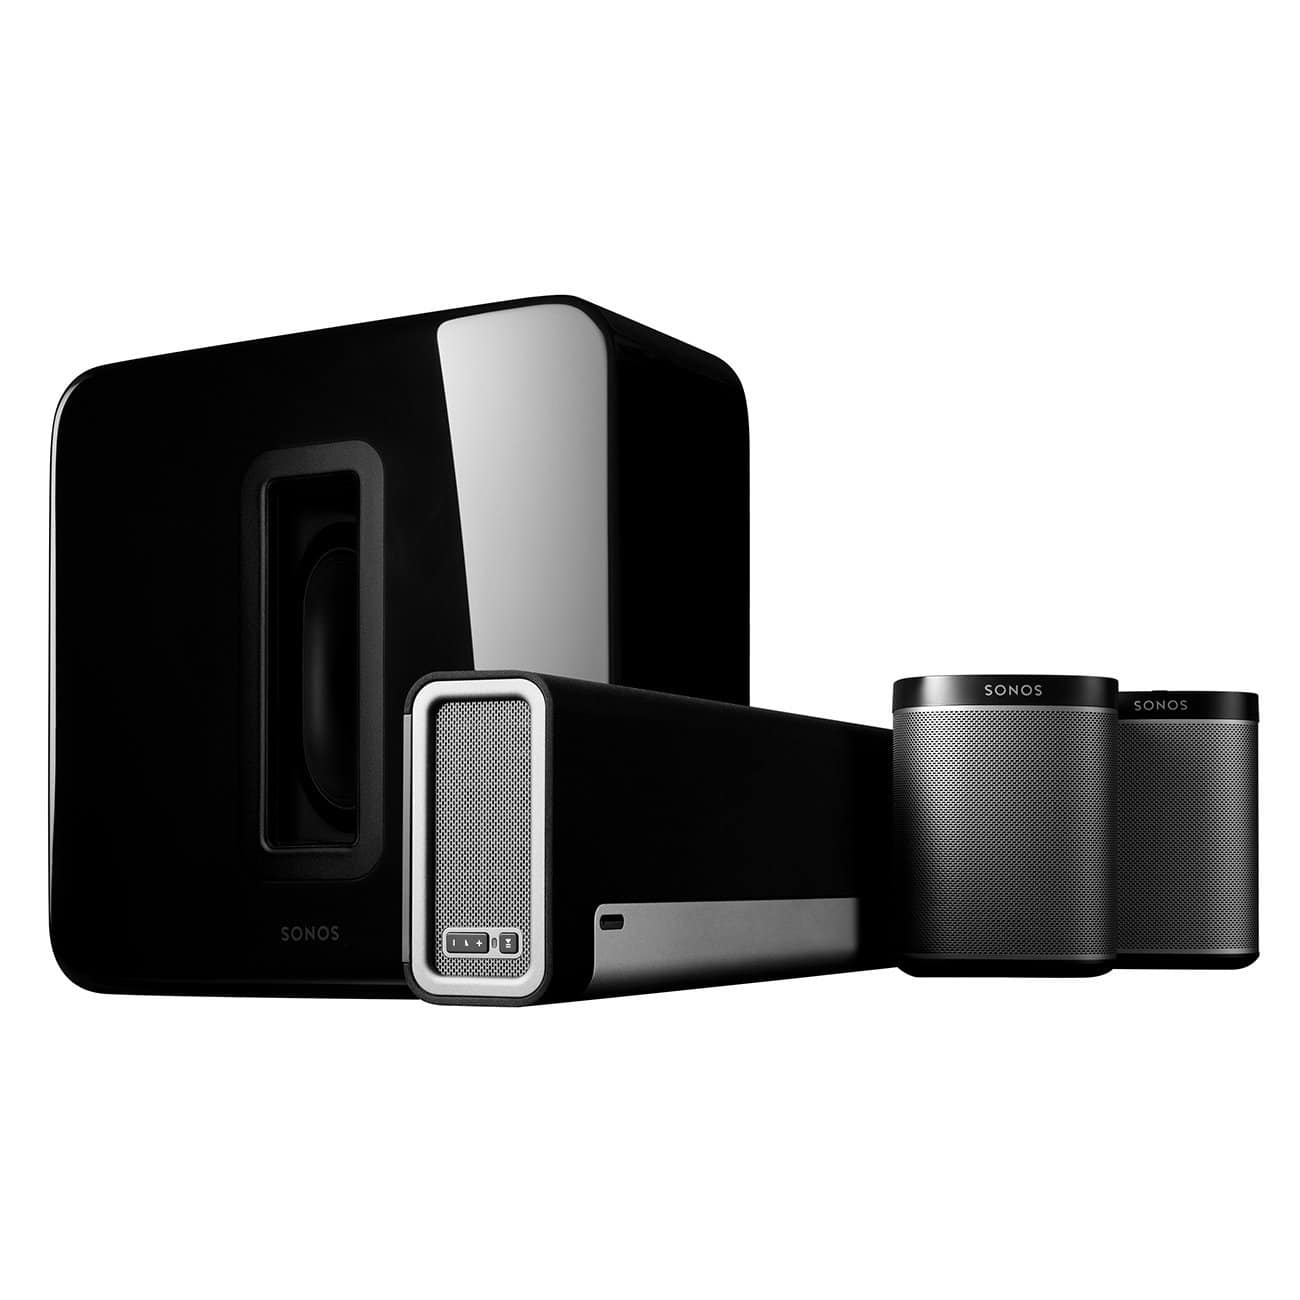 Sonos 5.1 Home Theater System